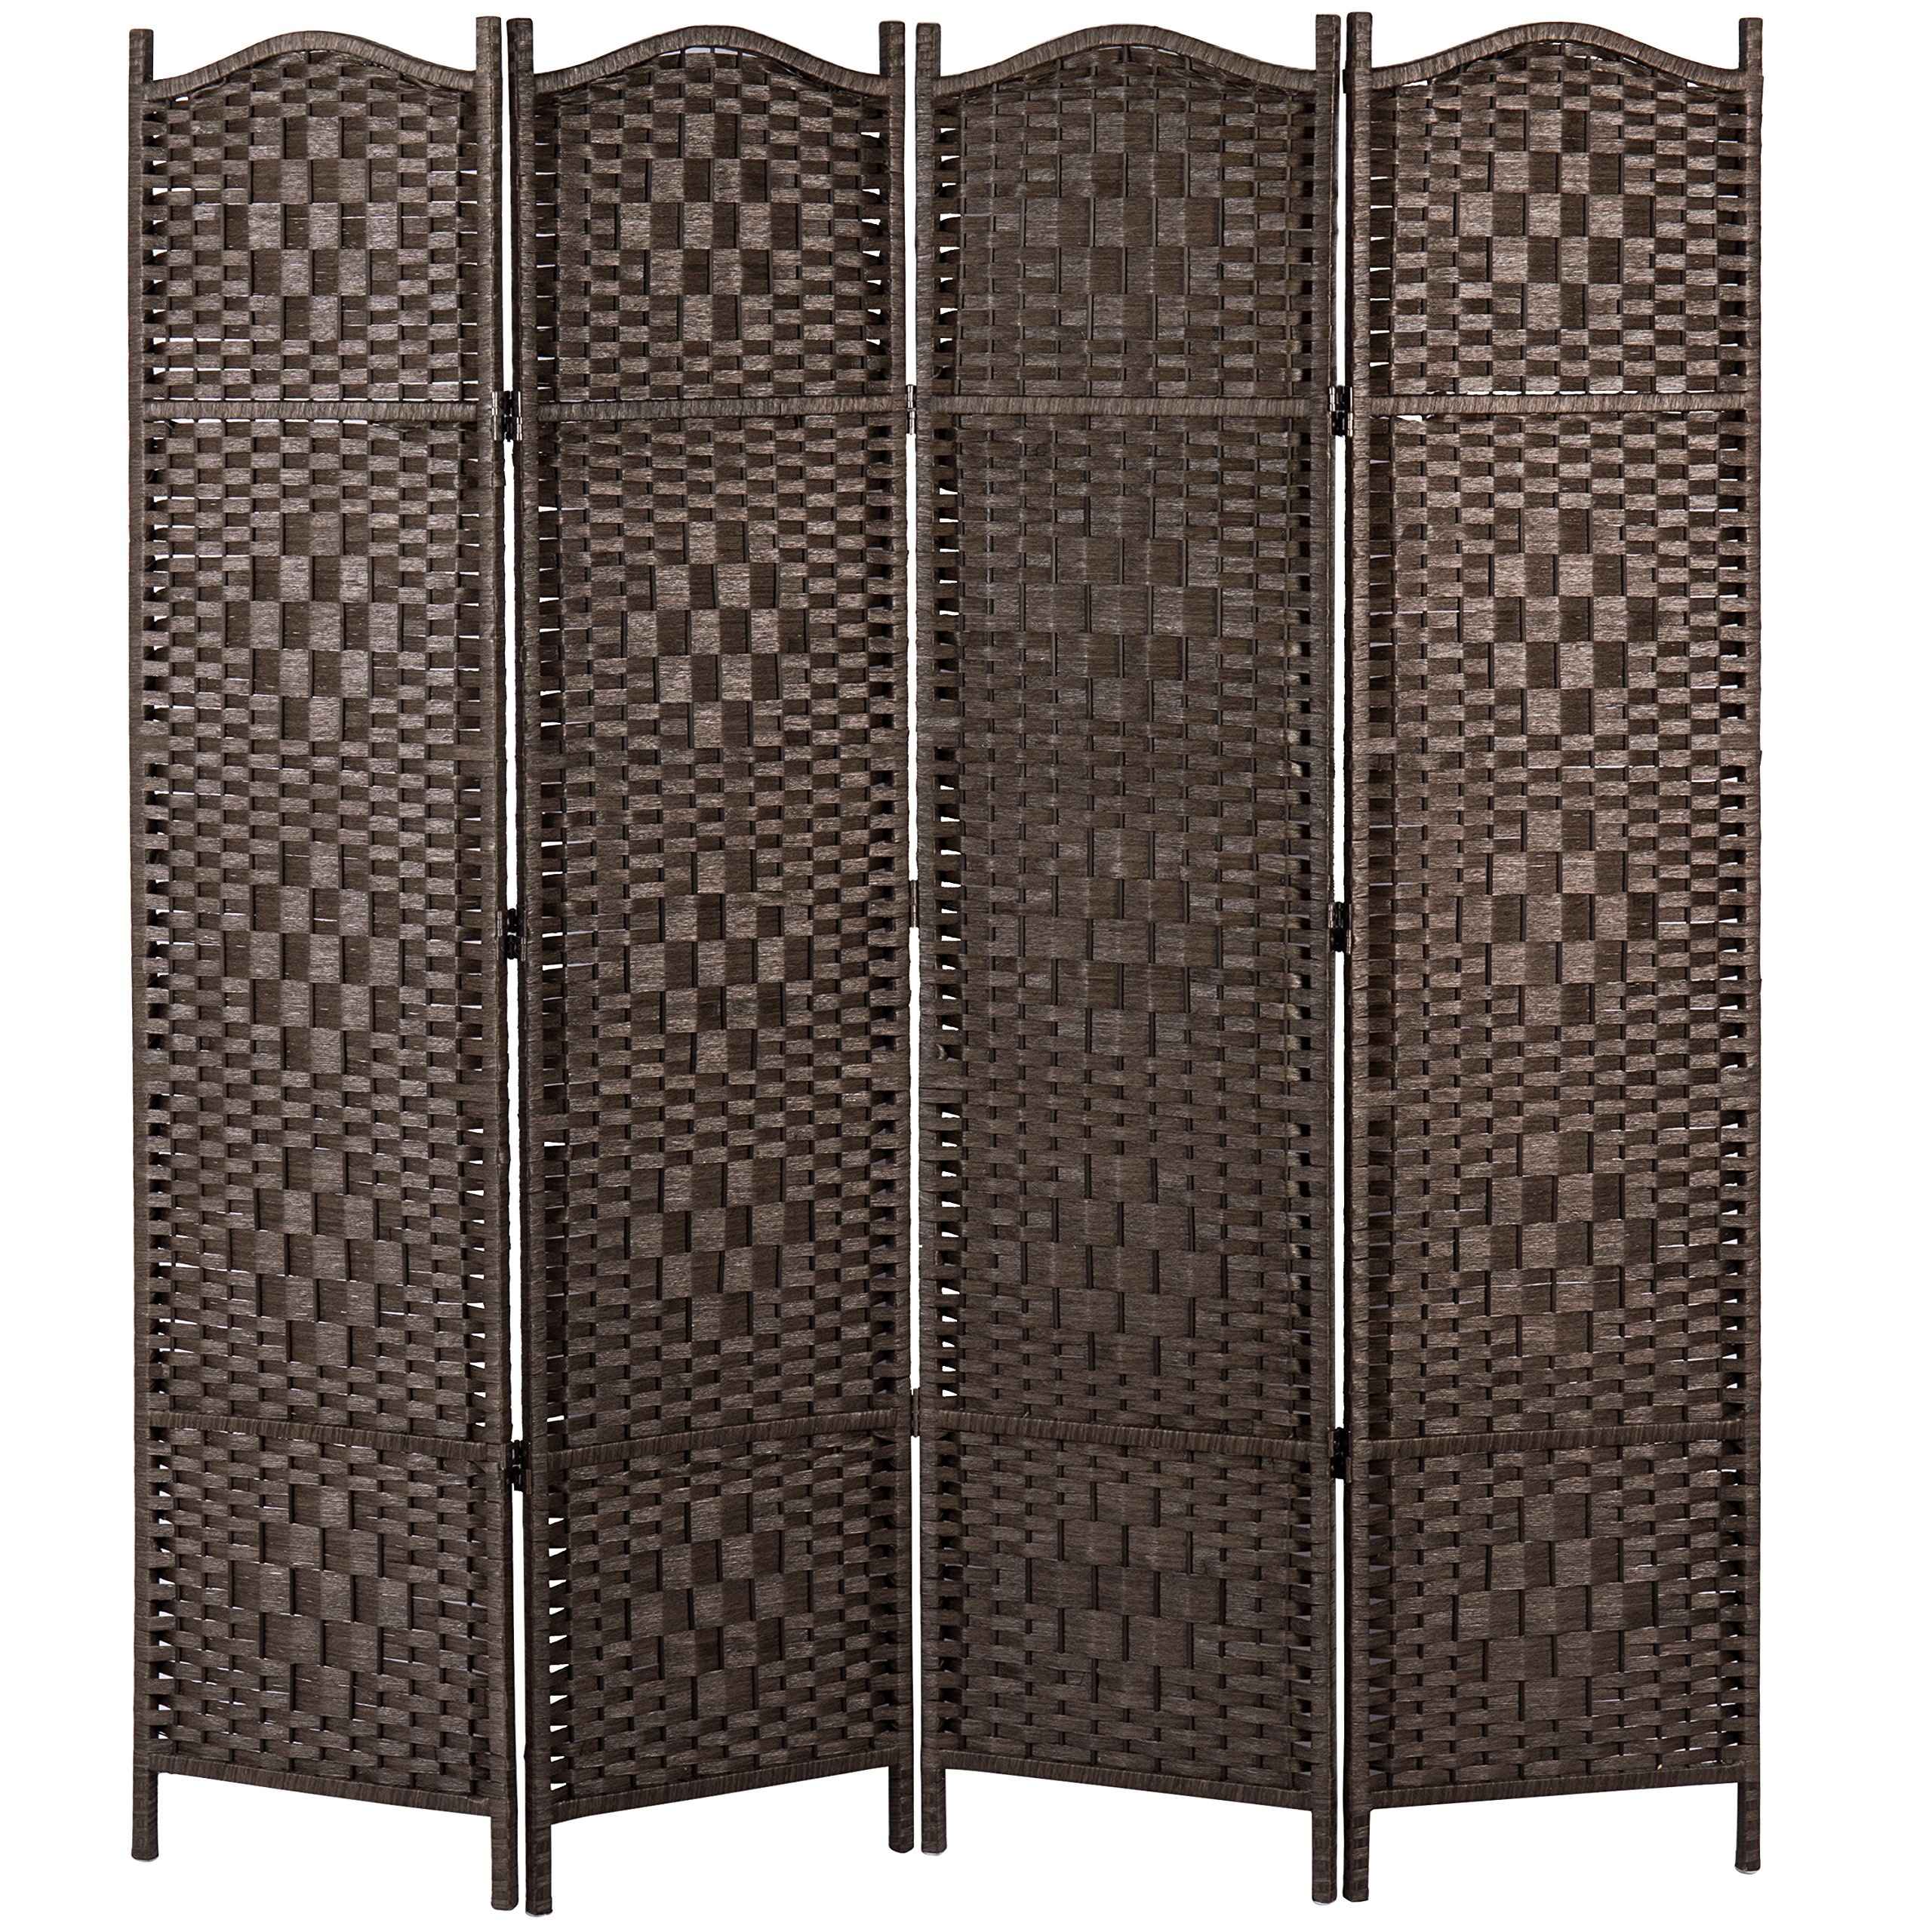 MyGift Freestanding Bamboo Woven Textured 4-Panel Partition Room Divider Folding Privacy Screen, Dark Brown by MyGift